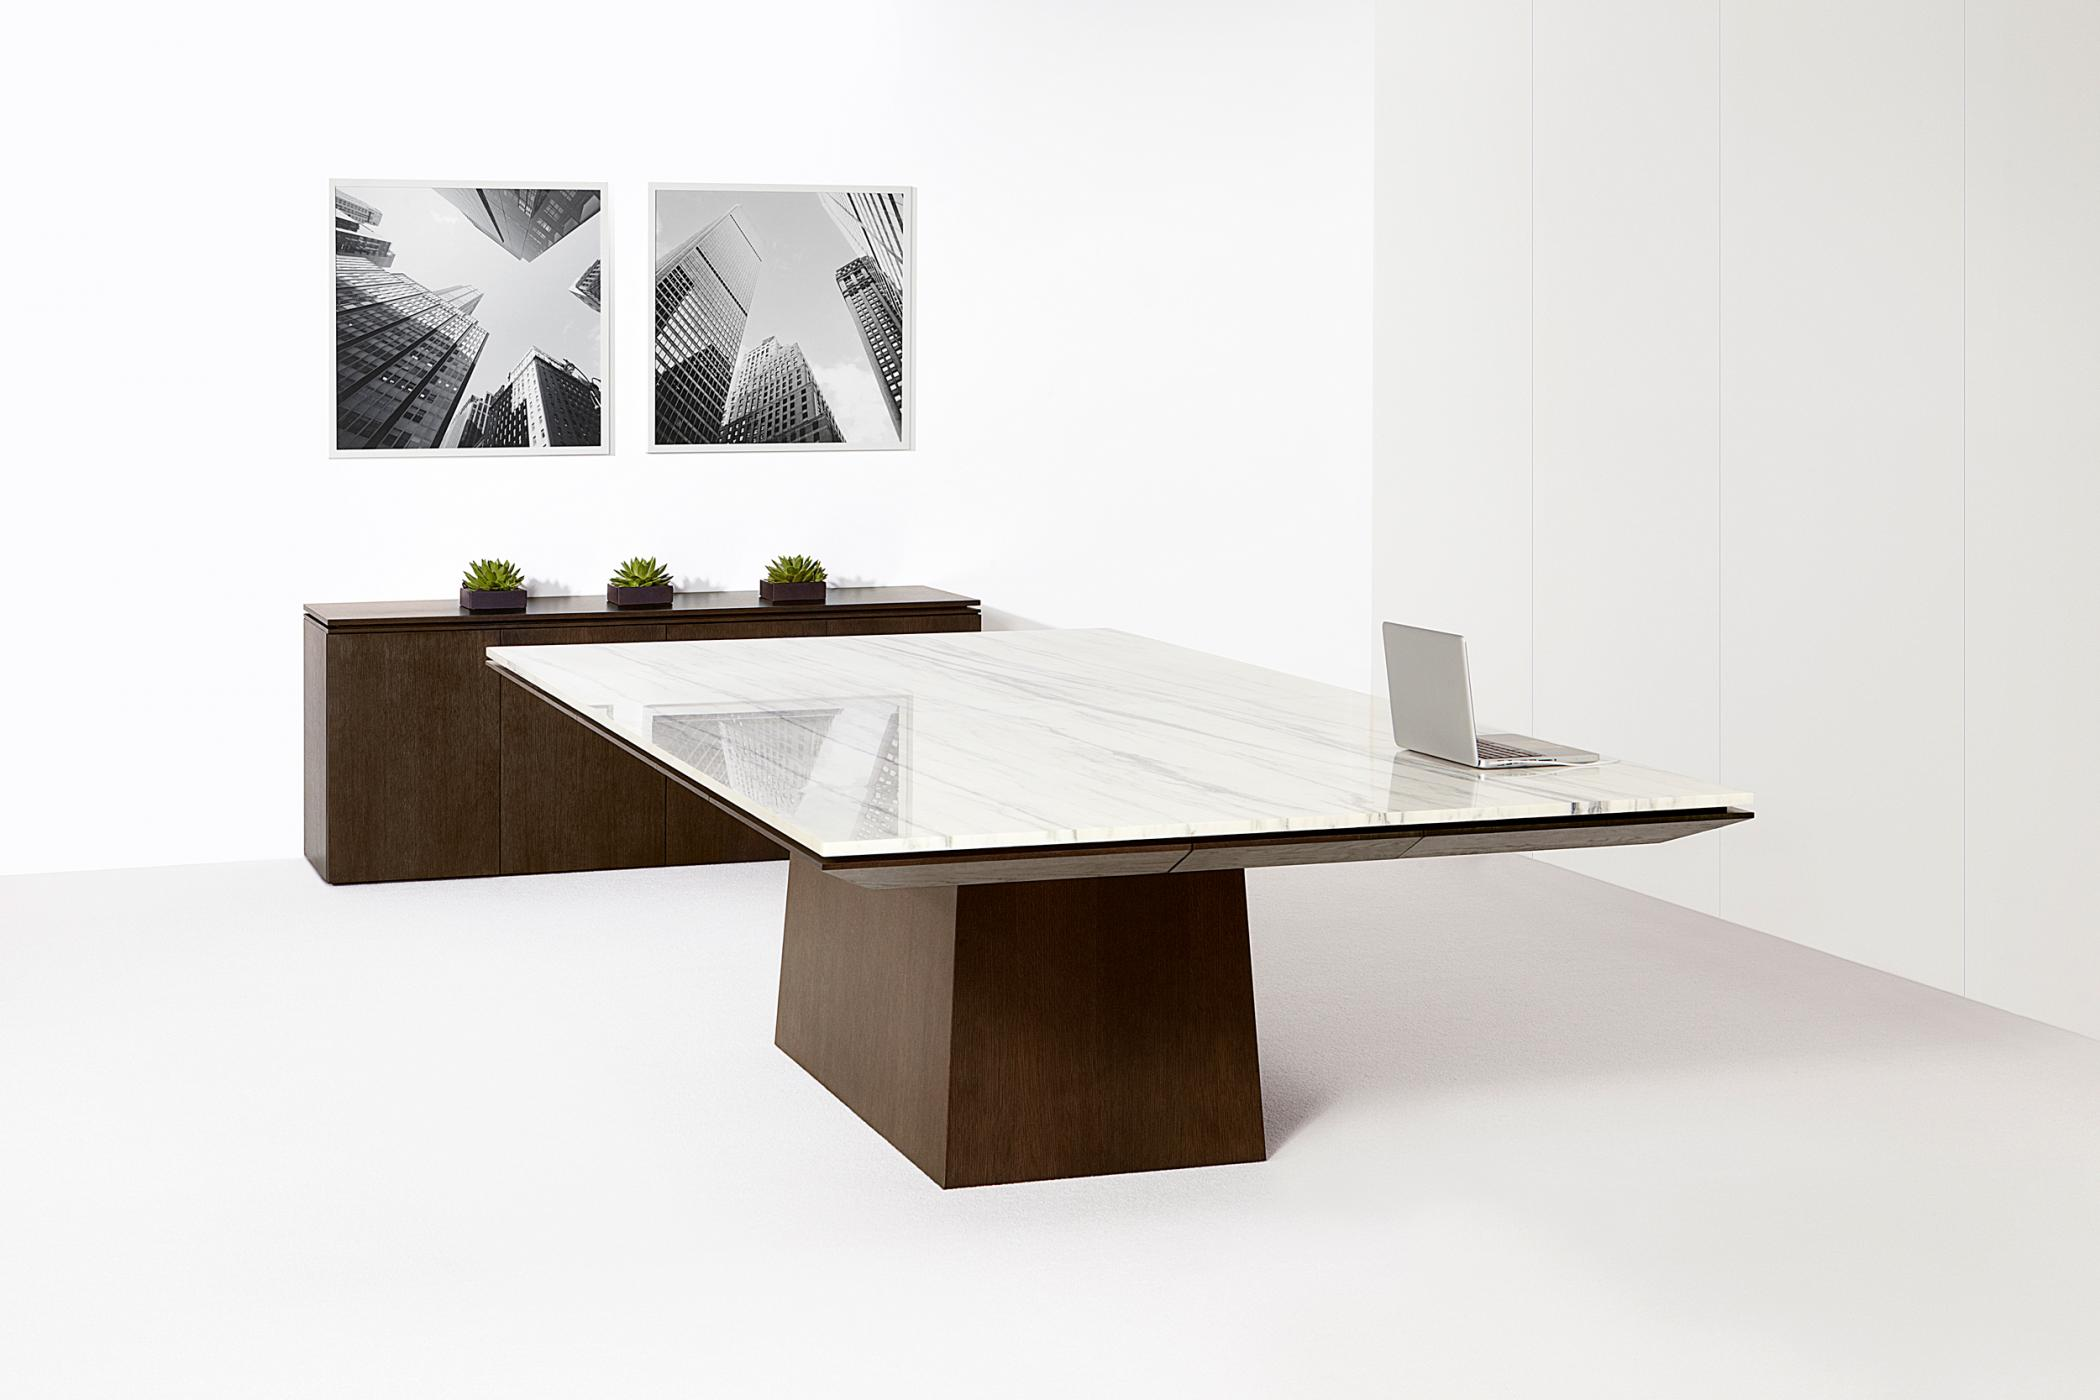 Mesa's design allows surface materials to display cleanly and beautifully.